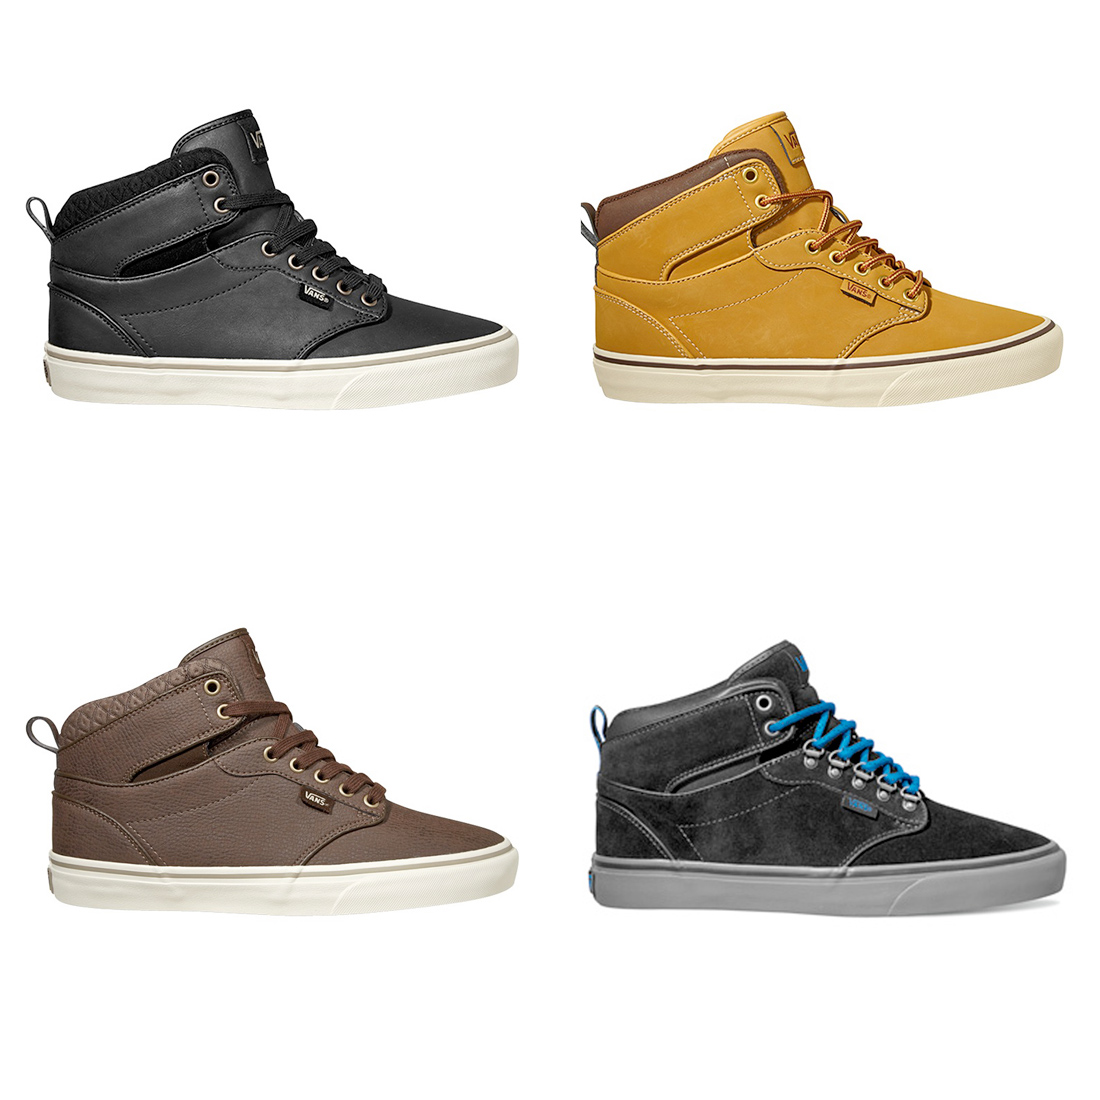 Vans Mens Shoes - Atwood Hi Tops - Trainers, Skate ...